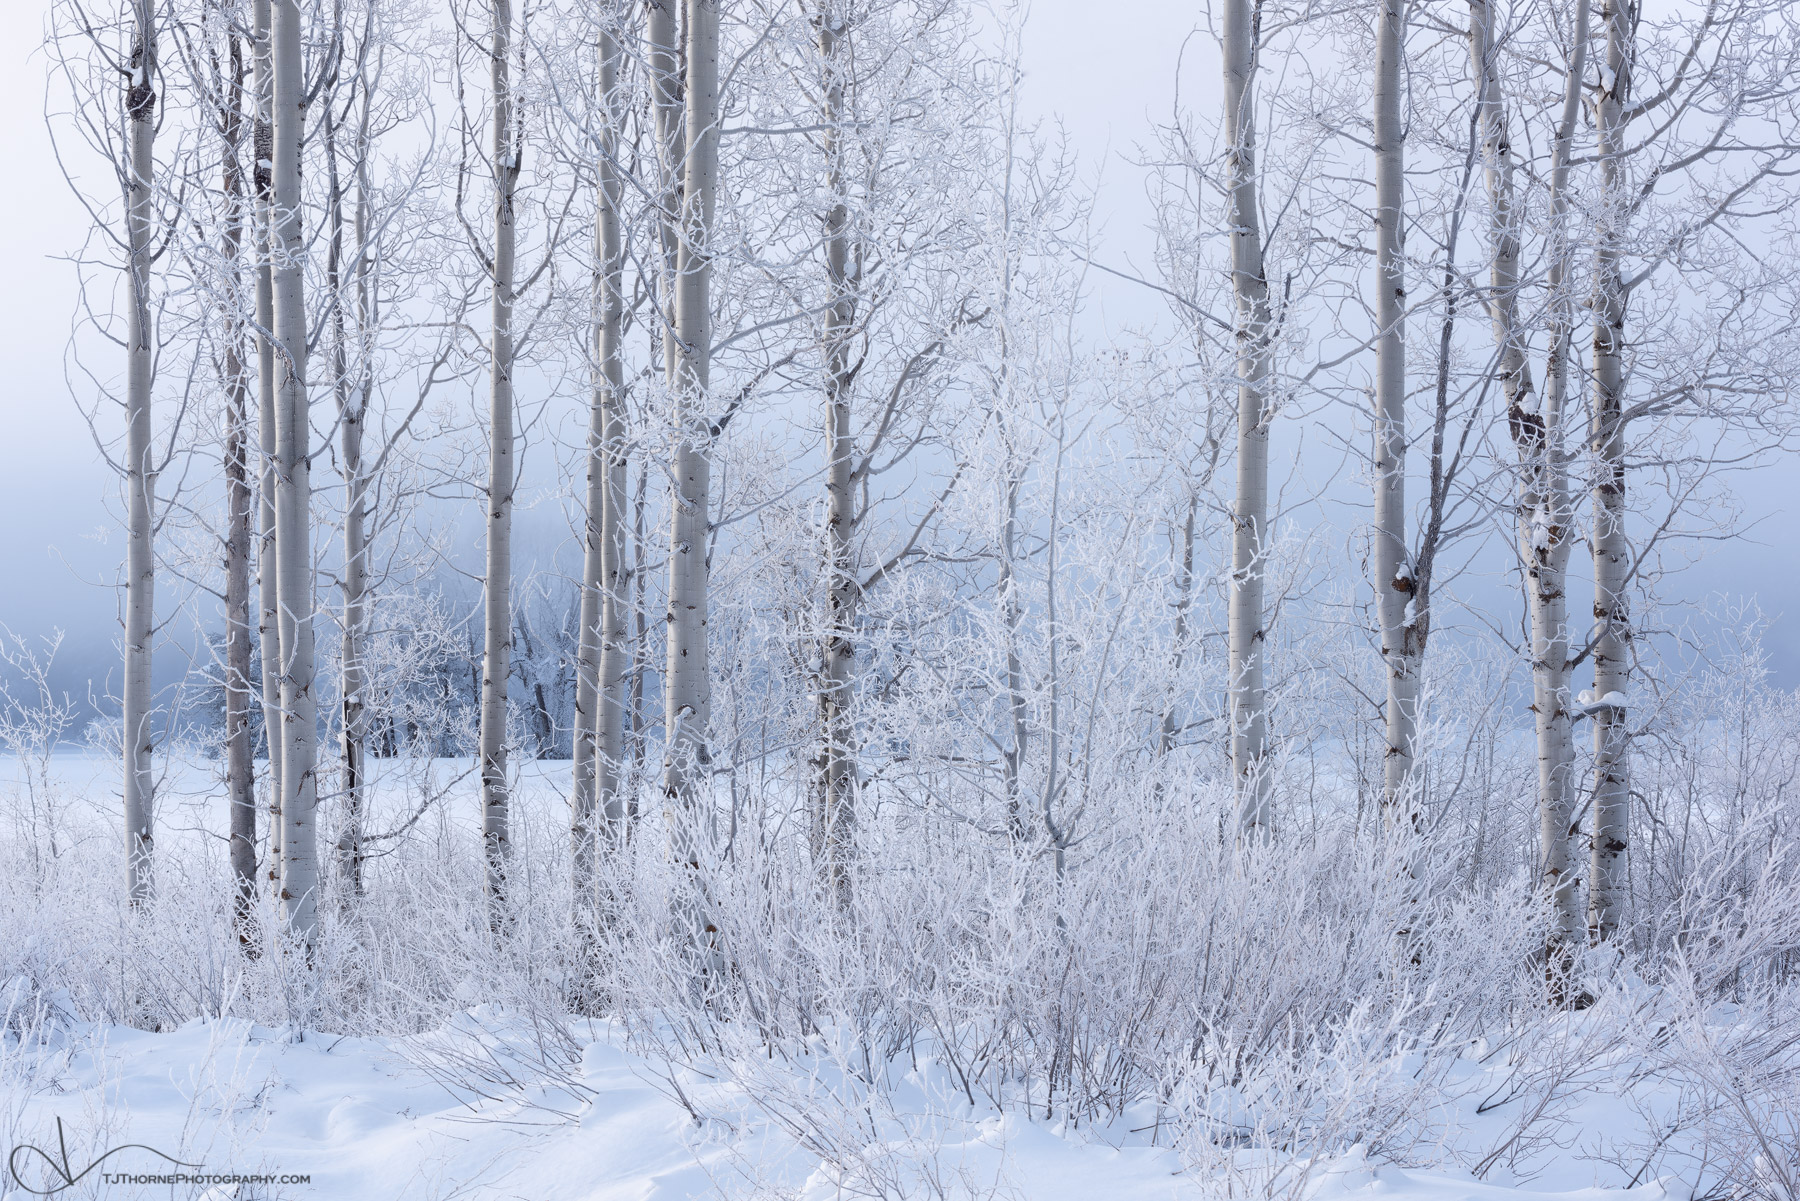 frost, aspen, trees, winter, grand teton national park, wyoming, snow, photo